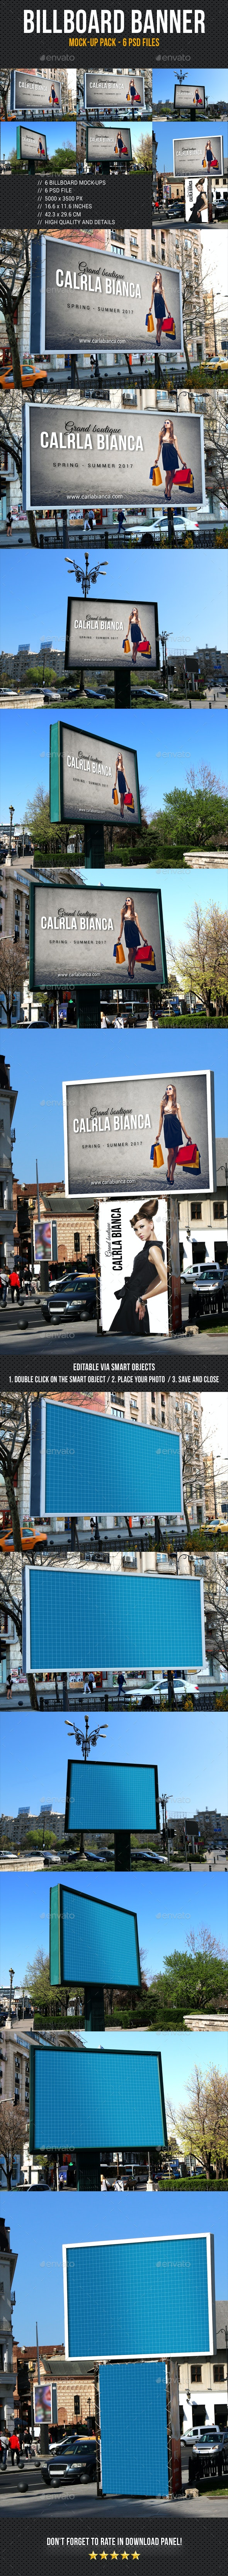 Billboard Banner Mock-Up Pack - Signage Print